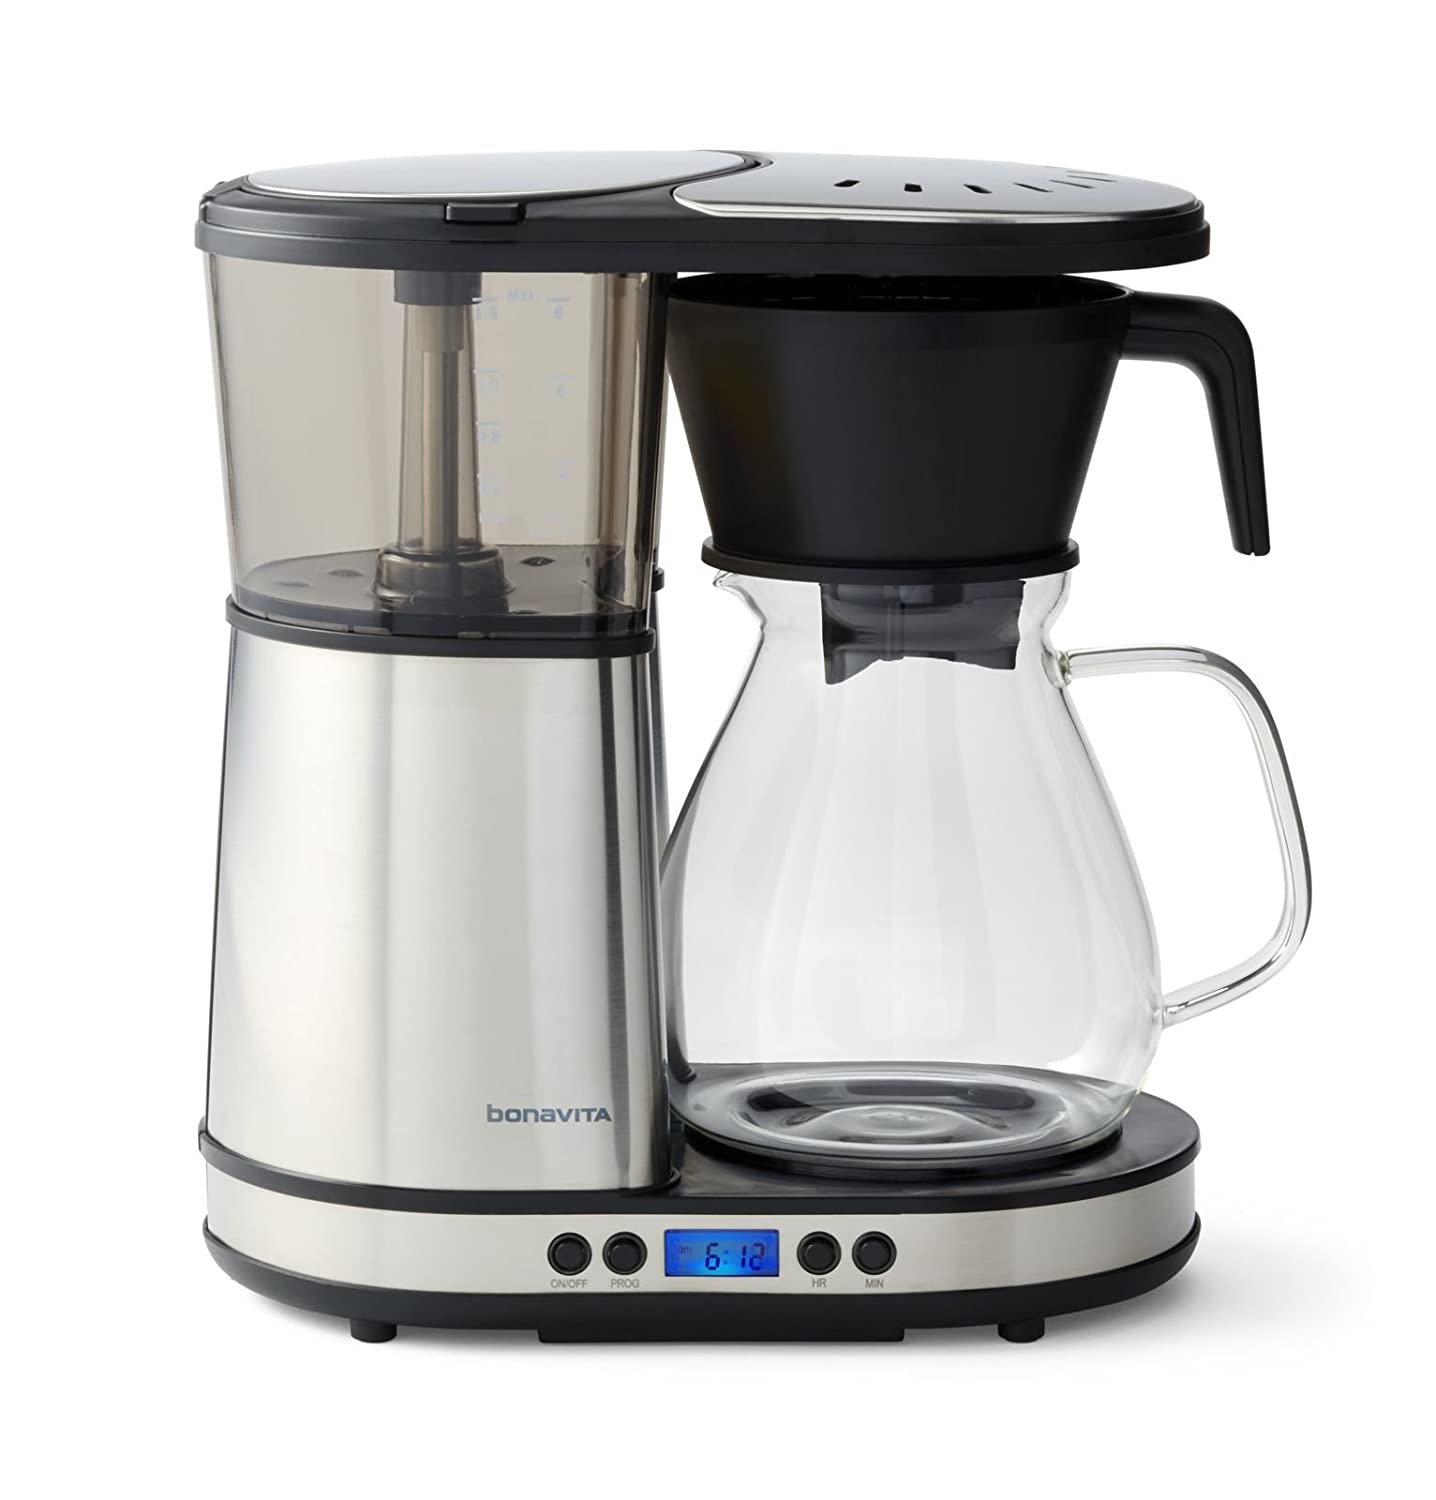 Bonavita BV1902DW 8-Cup One-Touch Coffee Maker Featuring Programmable Setting and Glass Carafe with Warming Plate, Silver